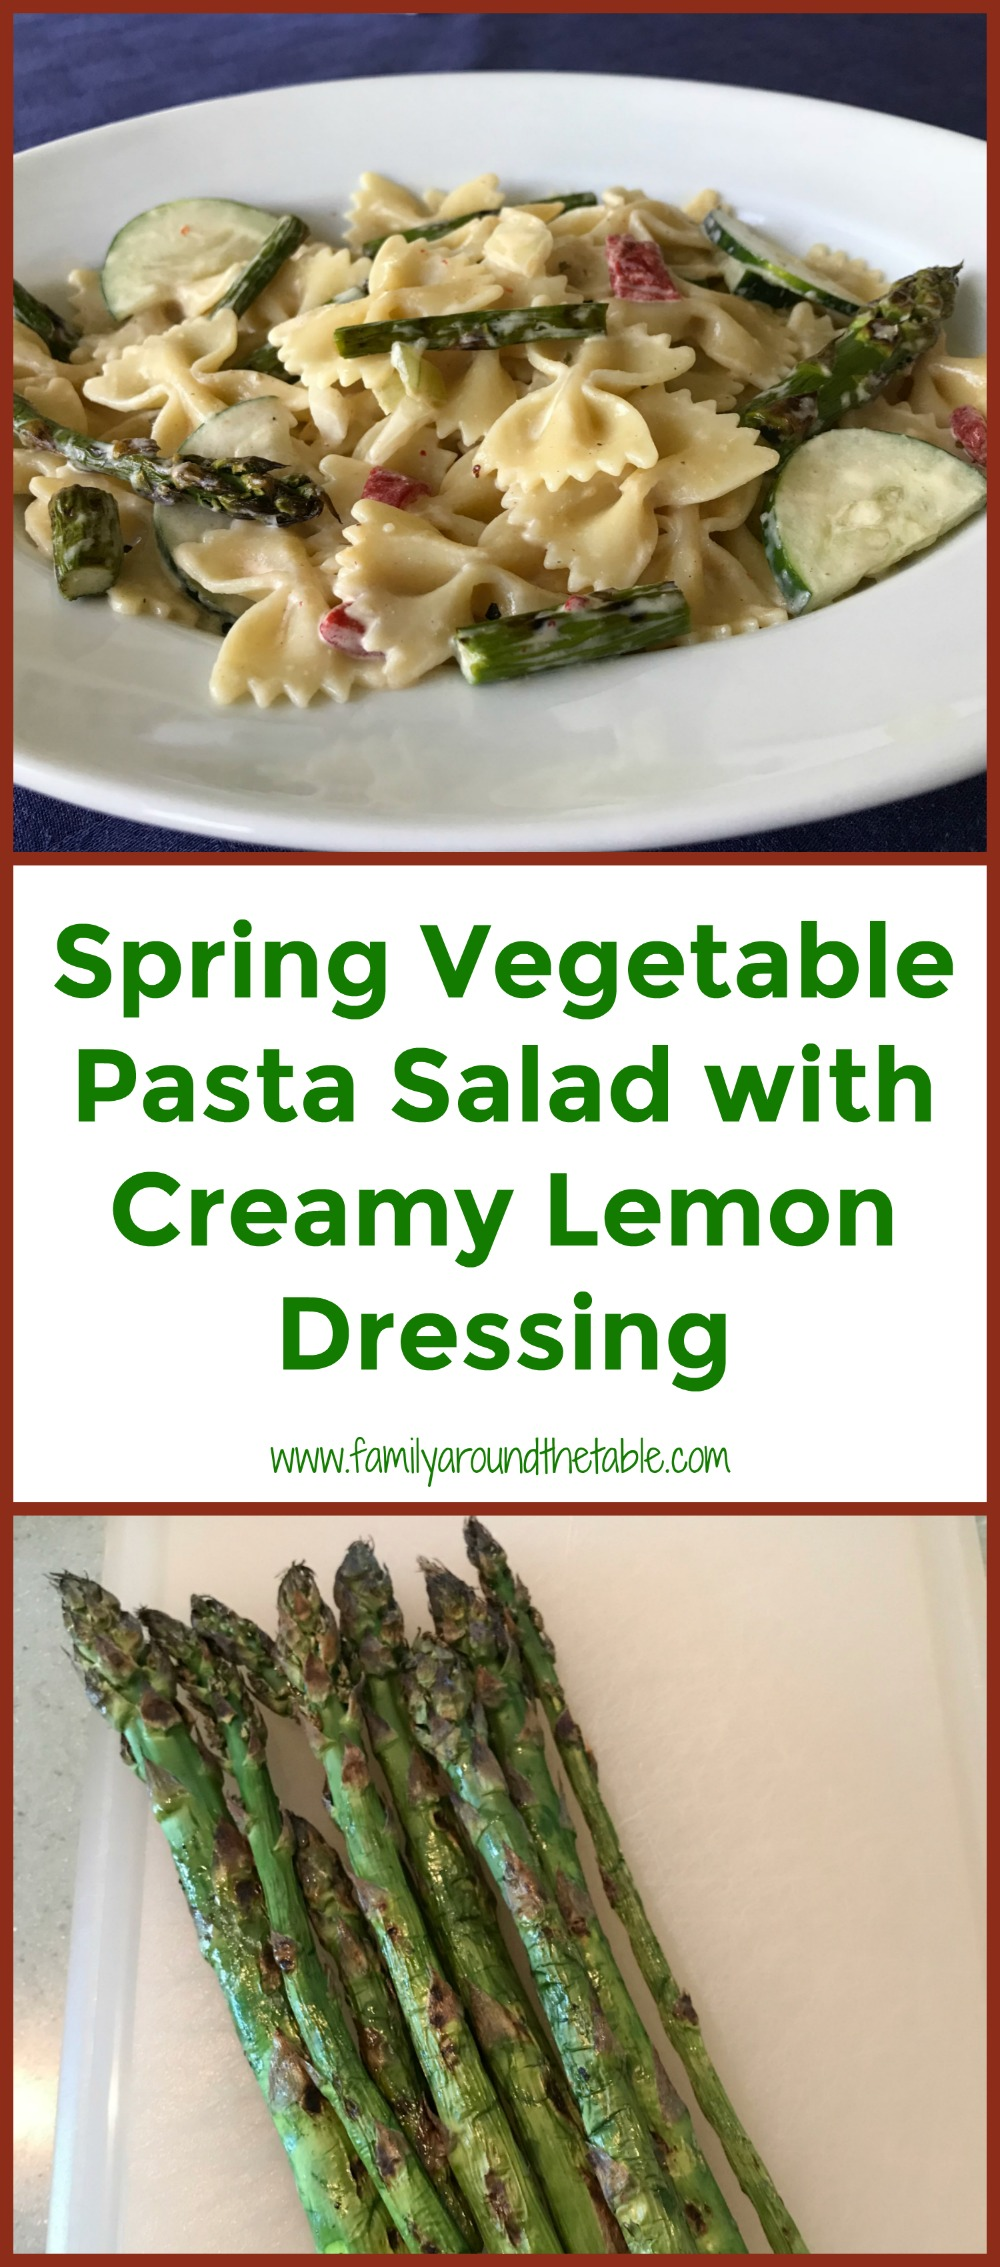 Make spring vegetable pasta salad with creamy lemon dressing for your next backyard gathering.